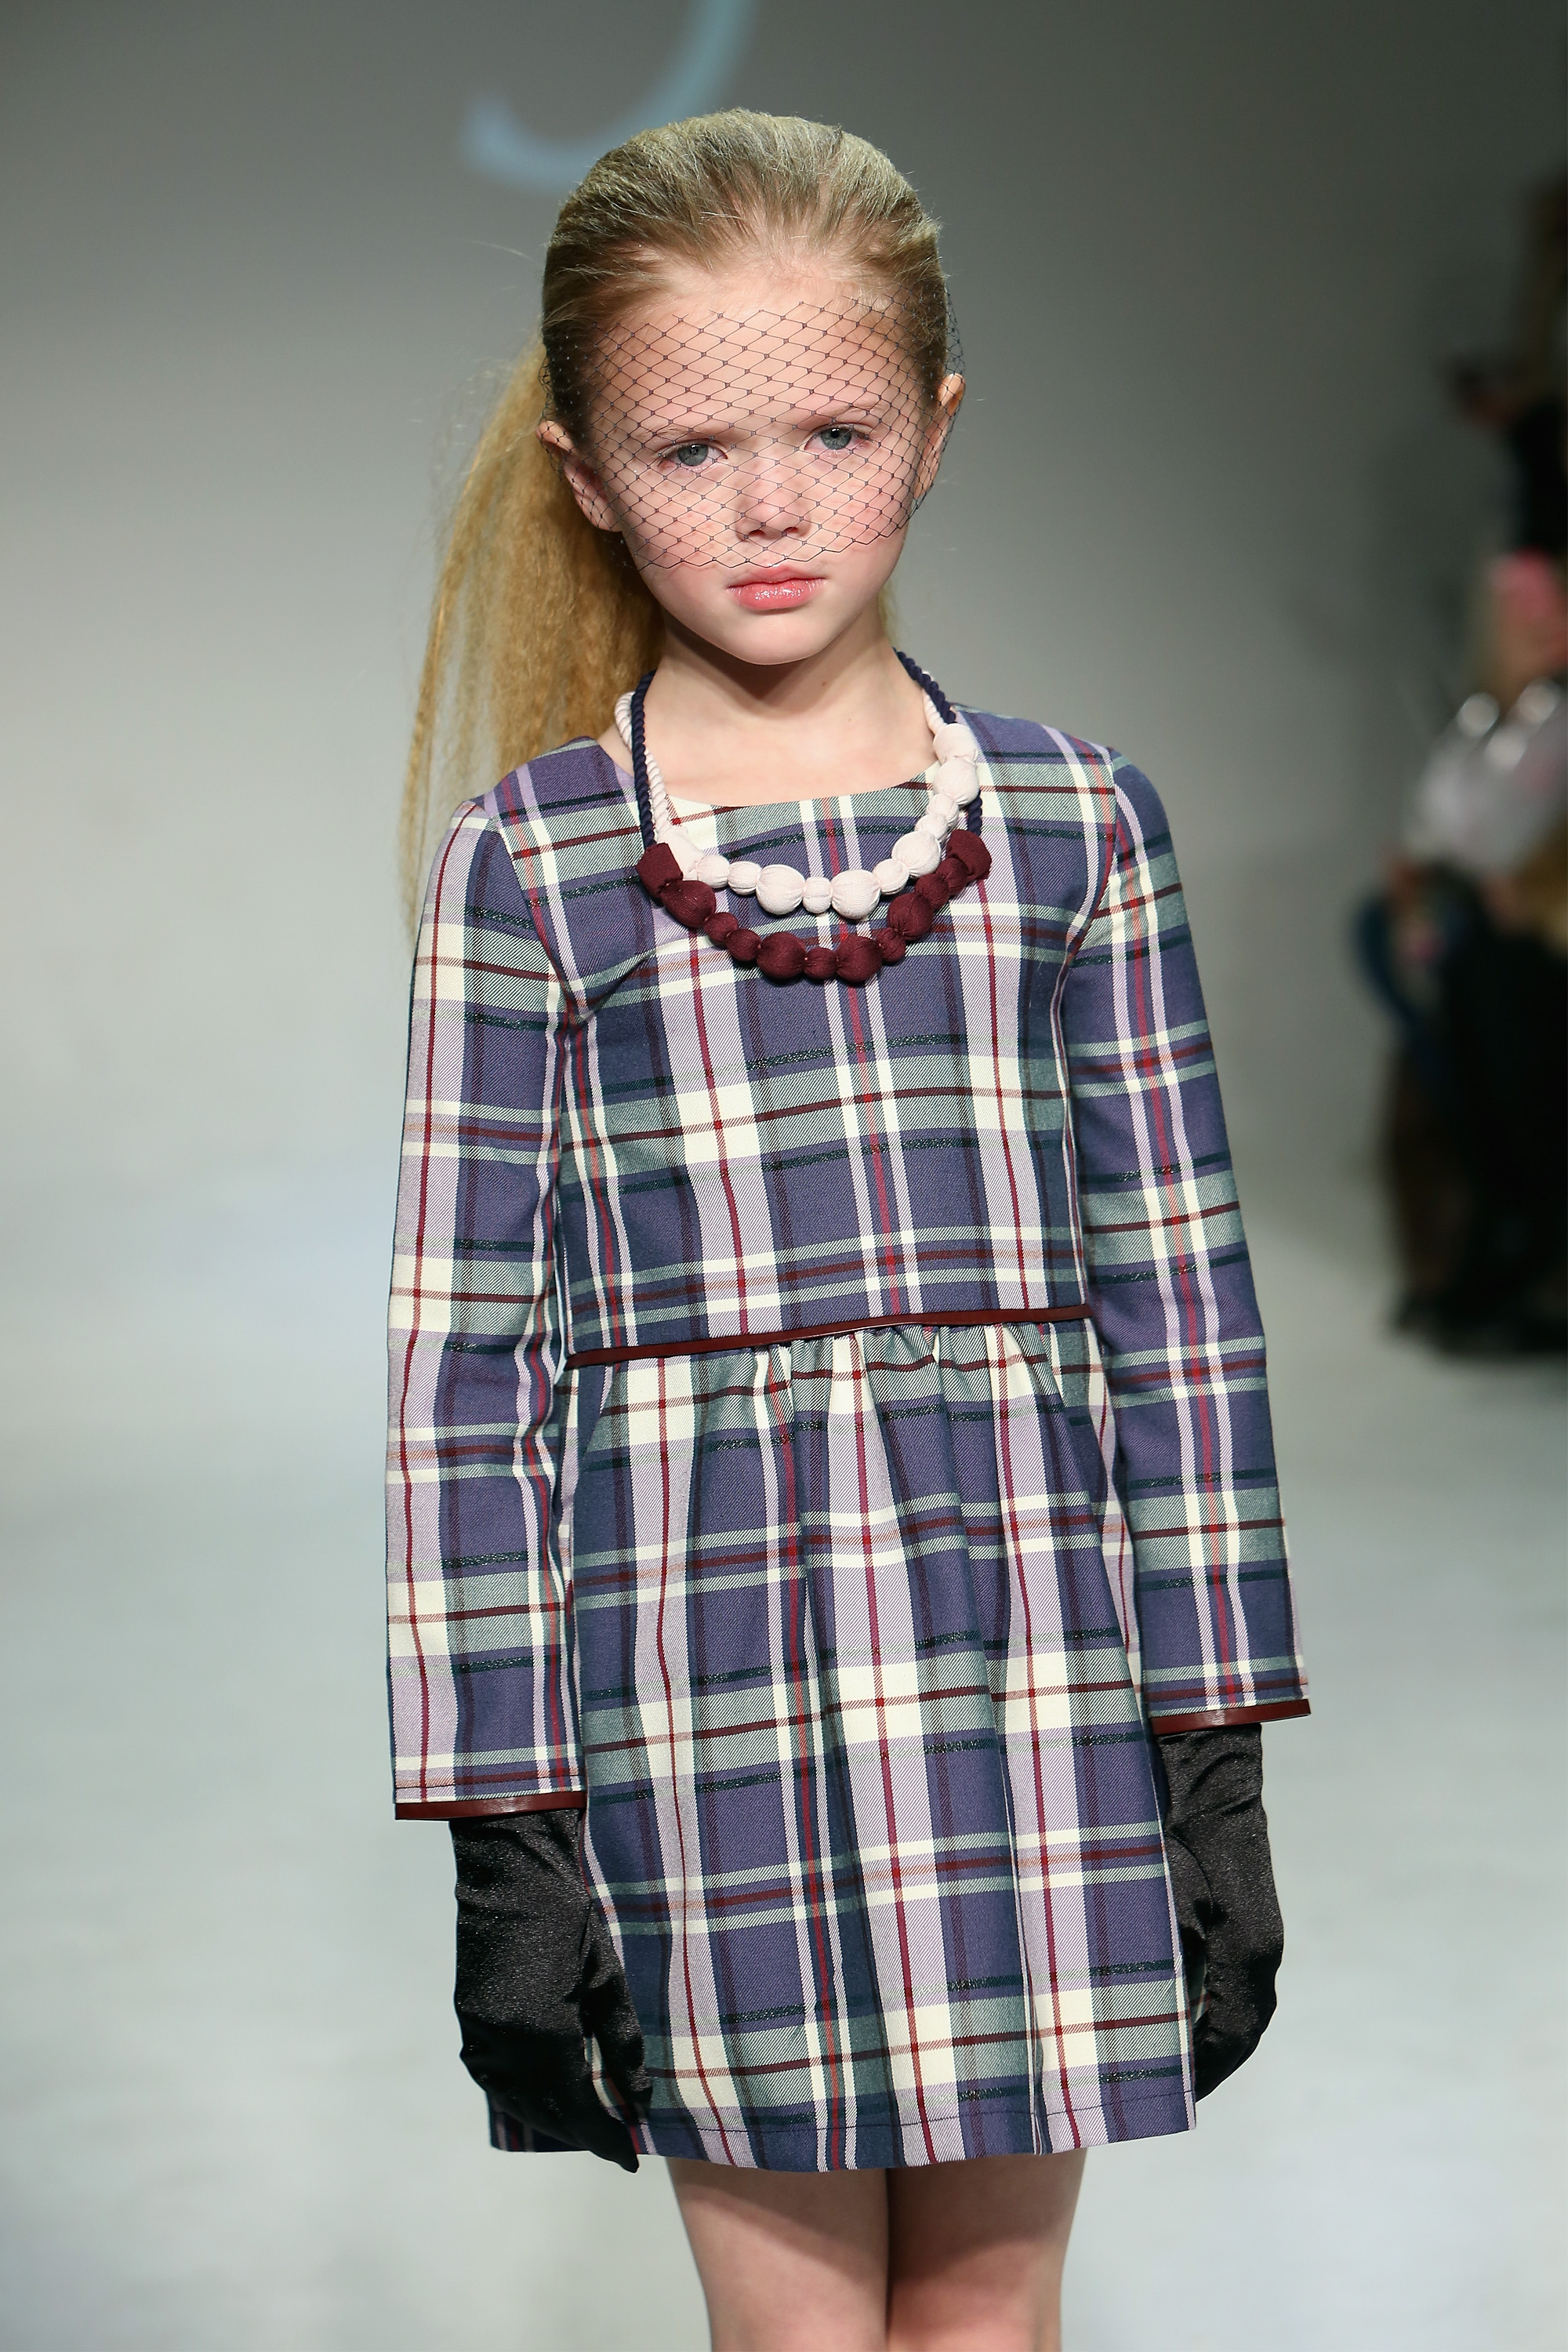 IMOGA Collection, F/W 2015 at PetiteParade - Poster Child